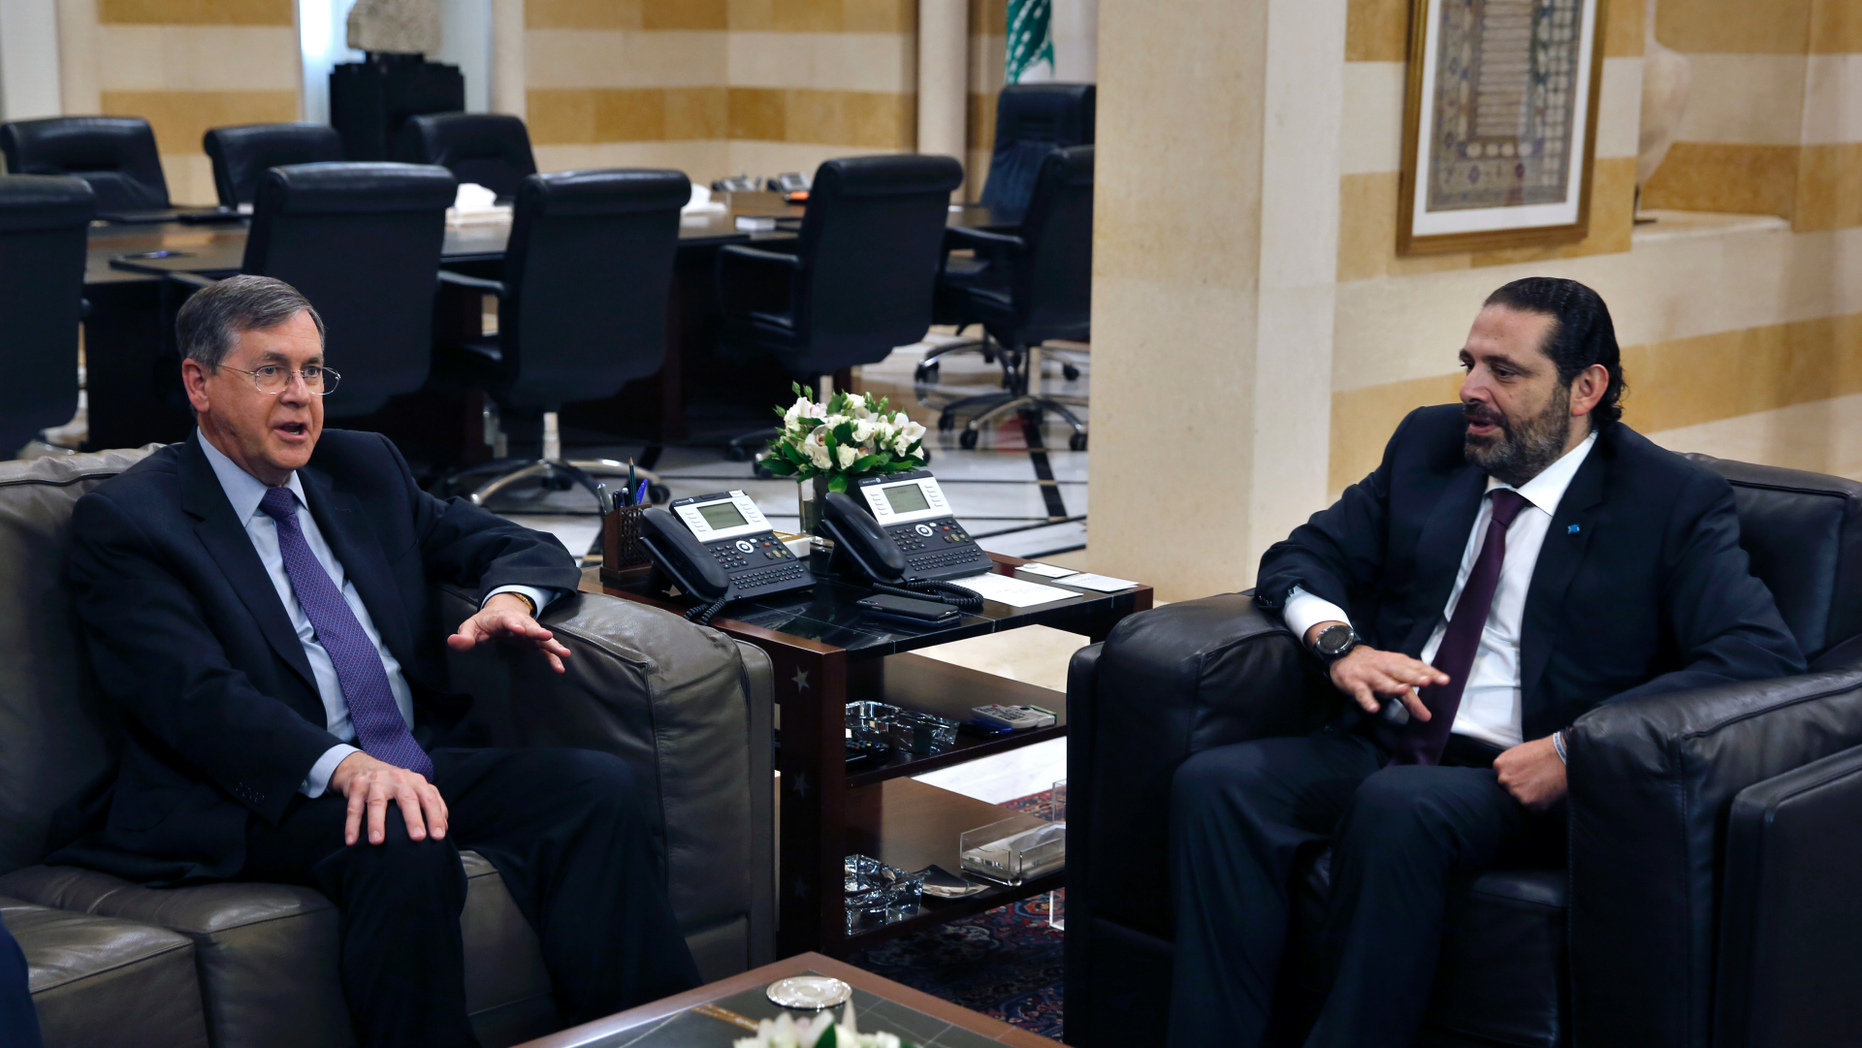 """U.S. Deputy Assistant Secretary of State David Satterfield, left, speaks during his meeting with Lebanese Prime Minister Saad Hariri, in Beirut, Lebanon, Tuesday, May 14, 2019. Satterfield's visit comes a week after President Michel Aoun presented the U.S. ambassador to Lebanon with a """"unified stance"""" regarding the demarcation of maritime border between Lebanon and Israel. (AP Photo/Bilal Hussein)"""